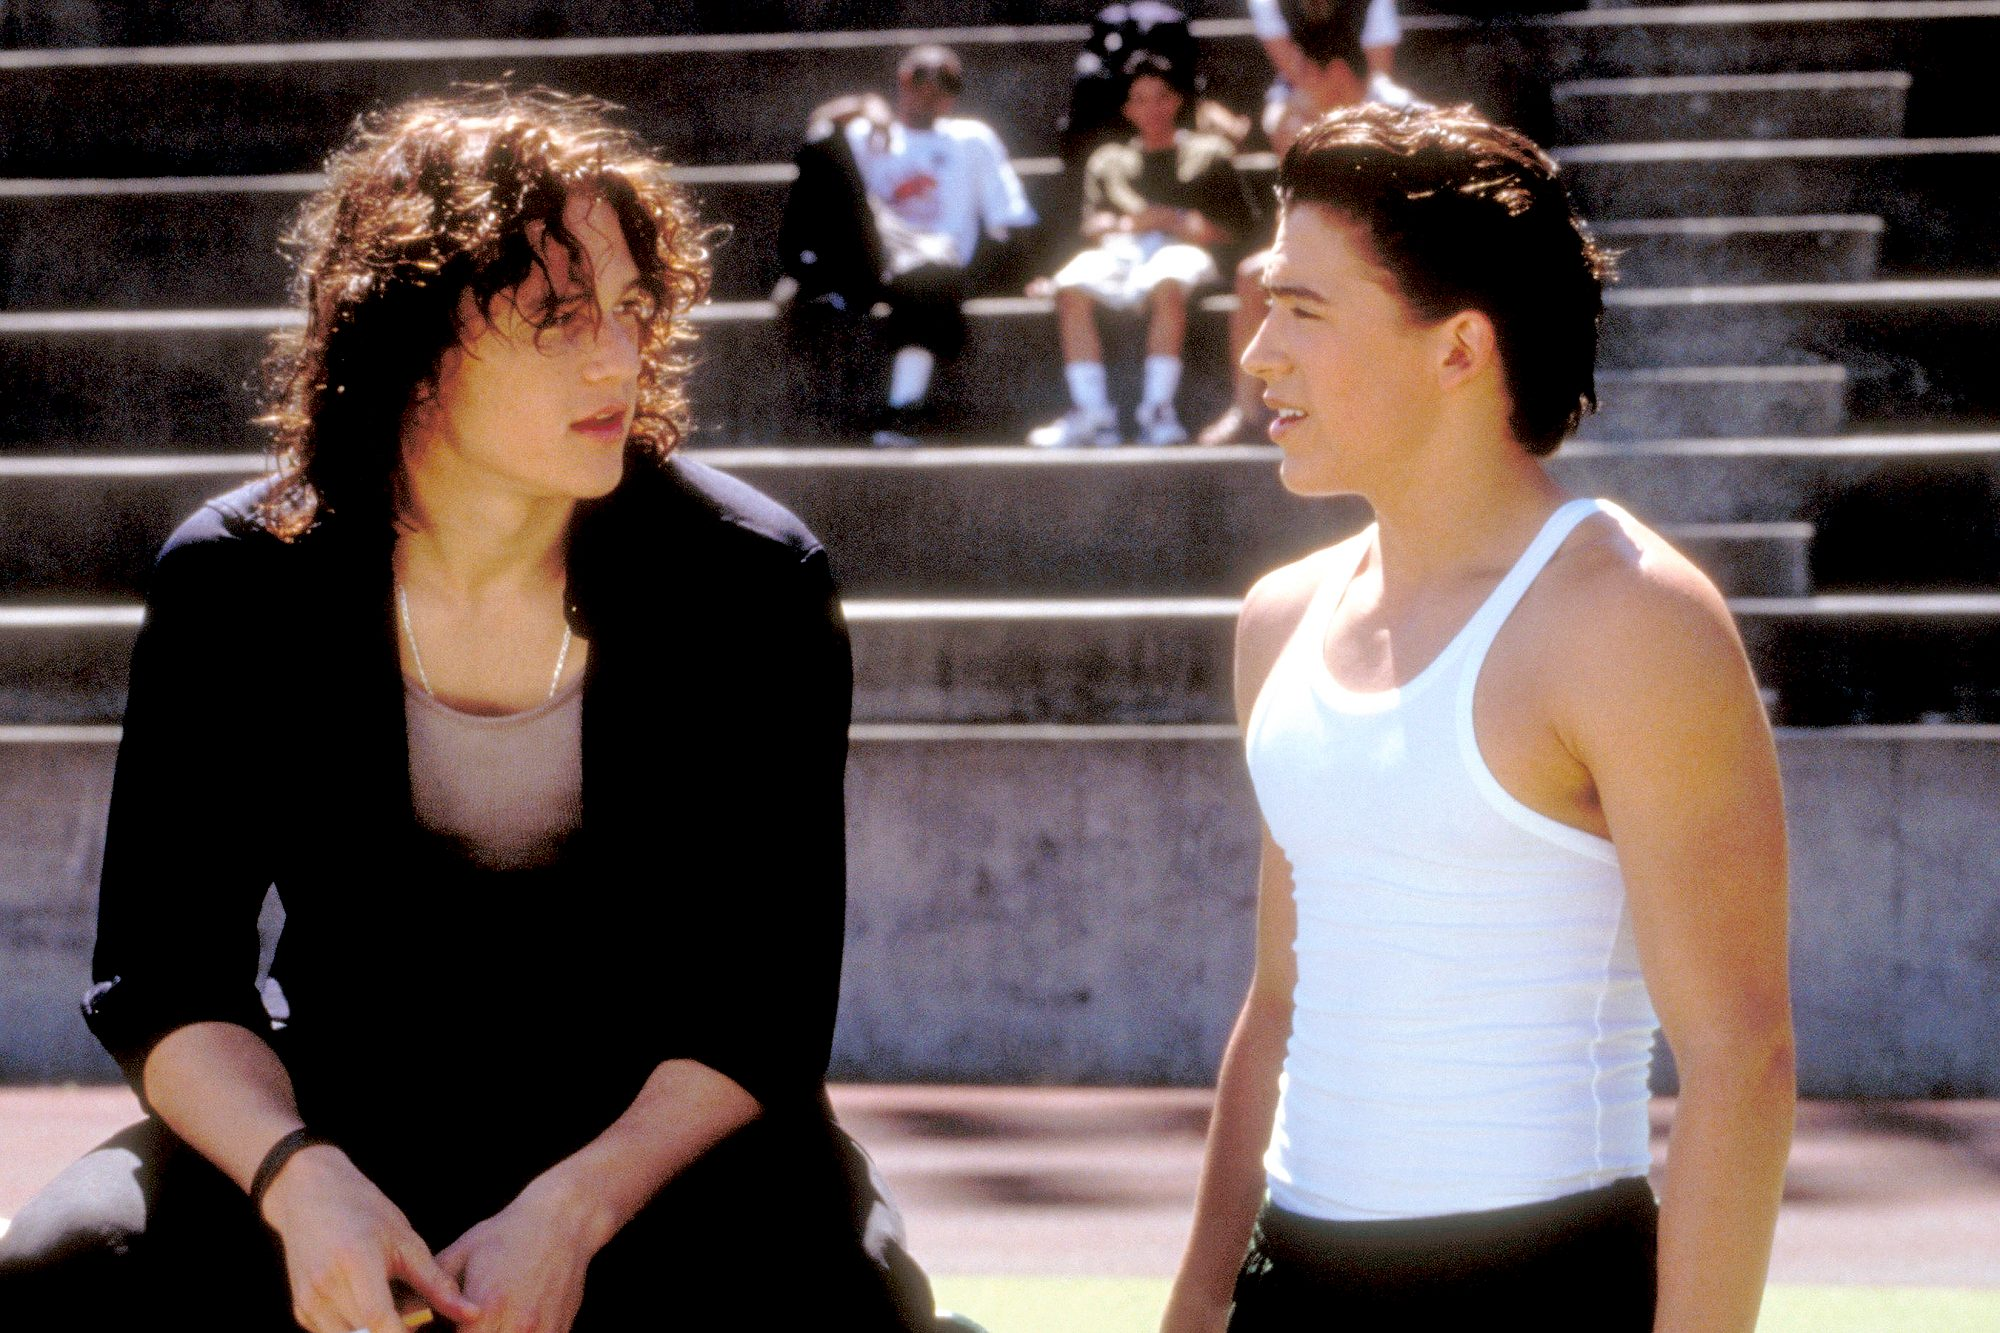 10 THINGS I HATE ABOUT YOU, from left: Heath Ledger, Andrew Keegan, 1999, © Buena Vista/courtesy Eve